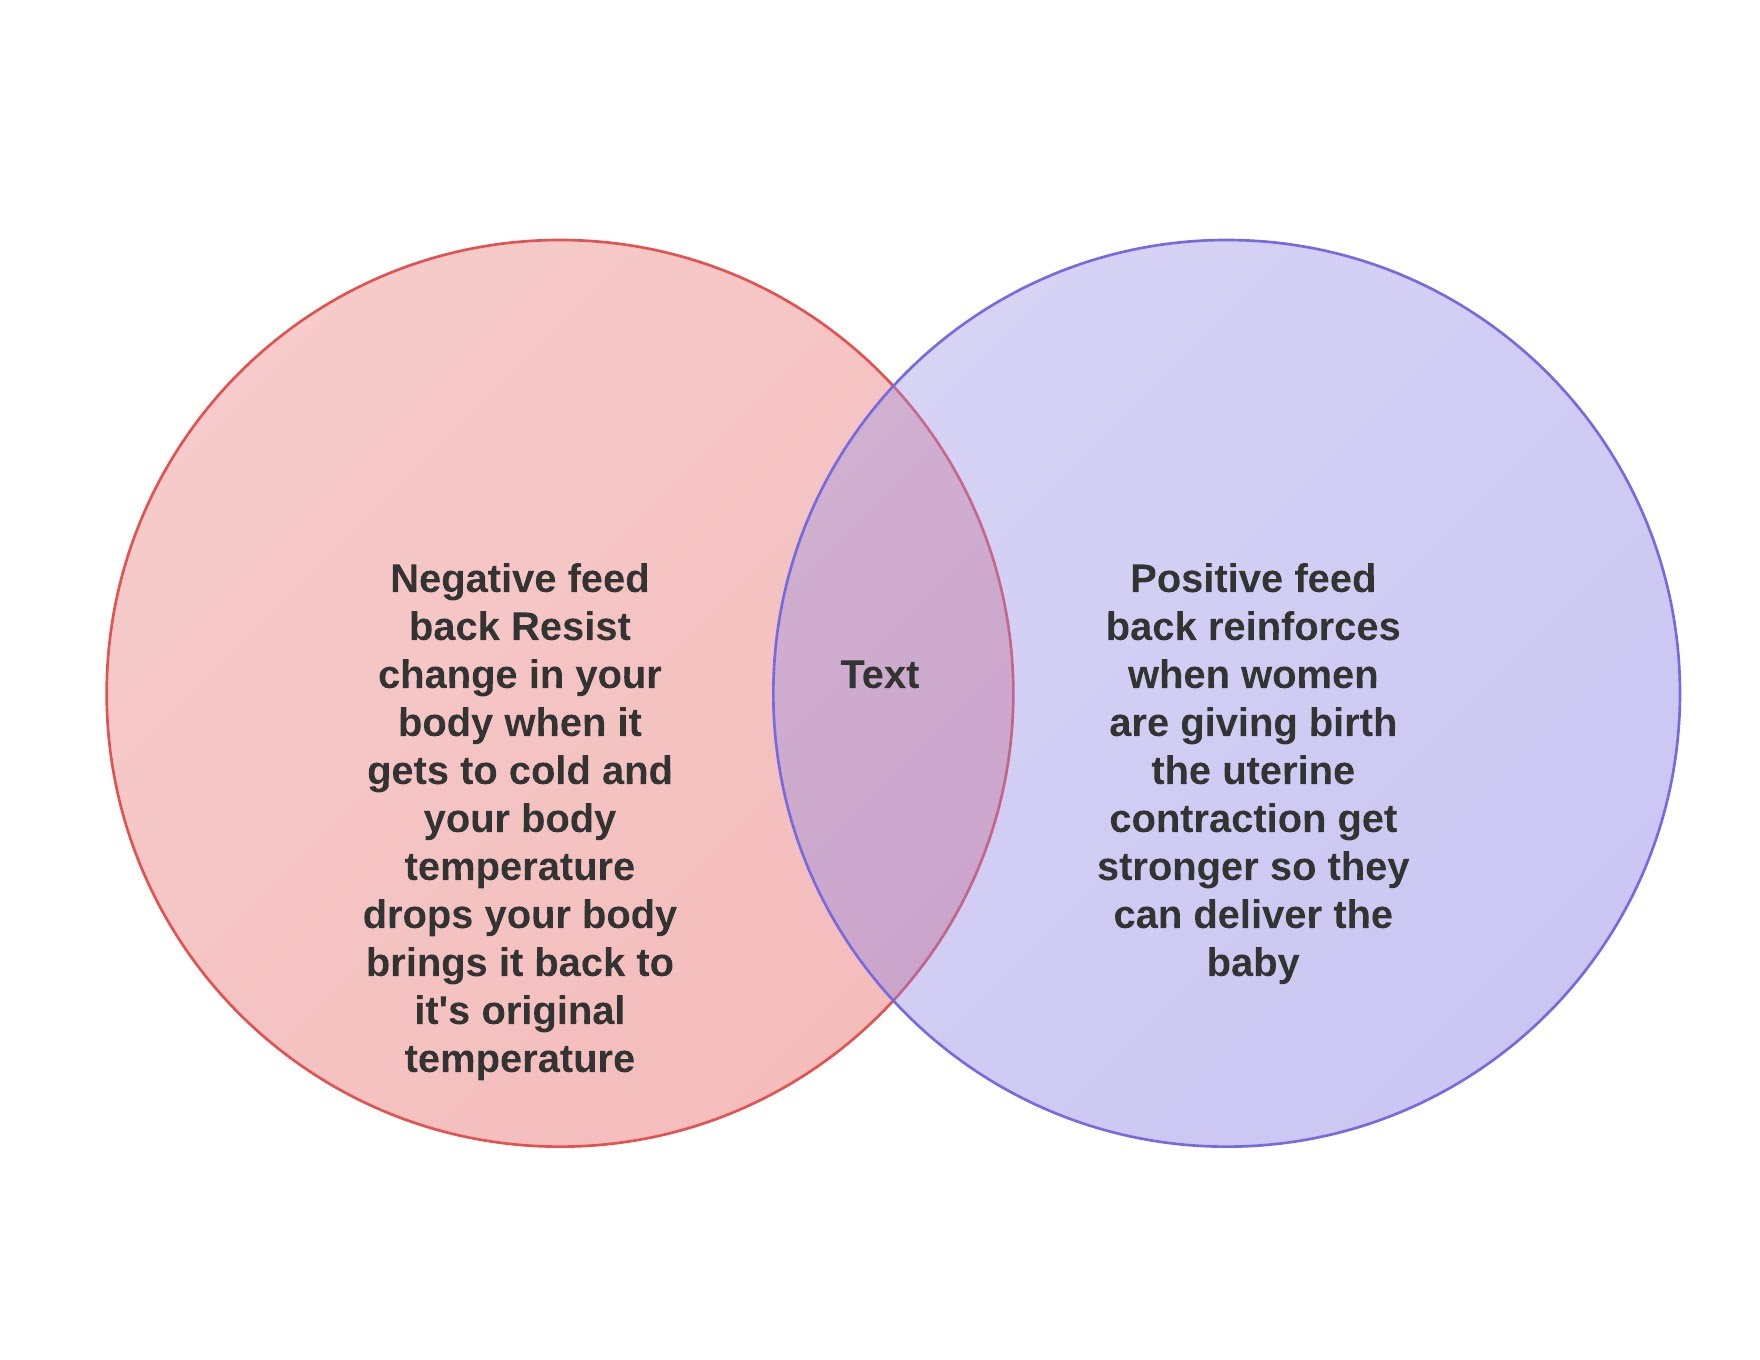 anatomy vs physiology venn diagram - Gecce.tackletarts.co